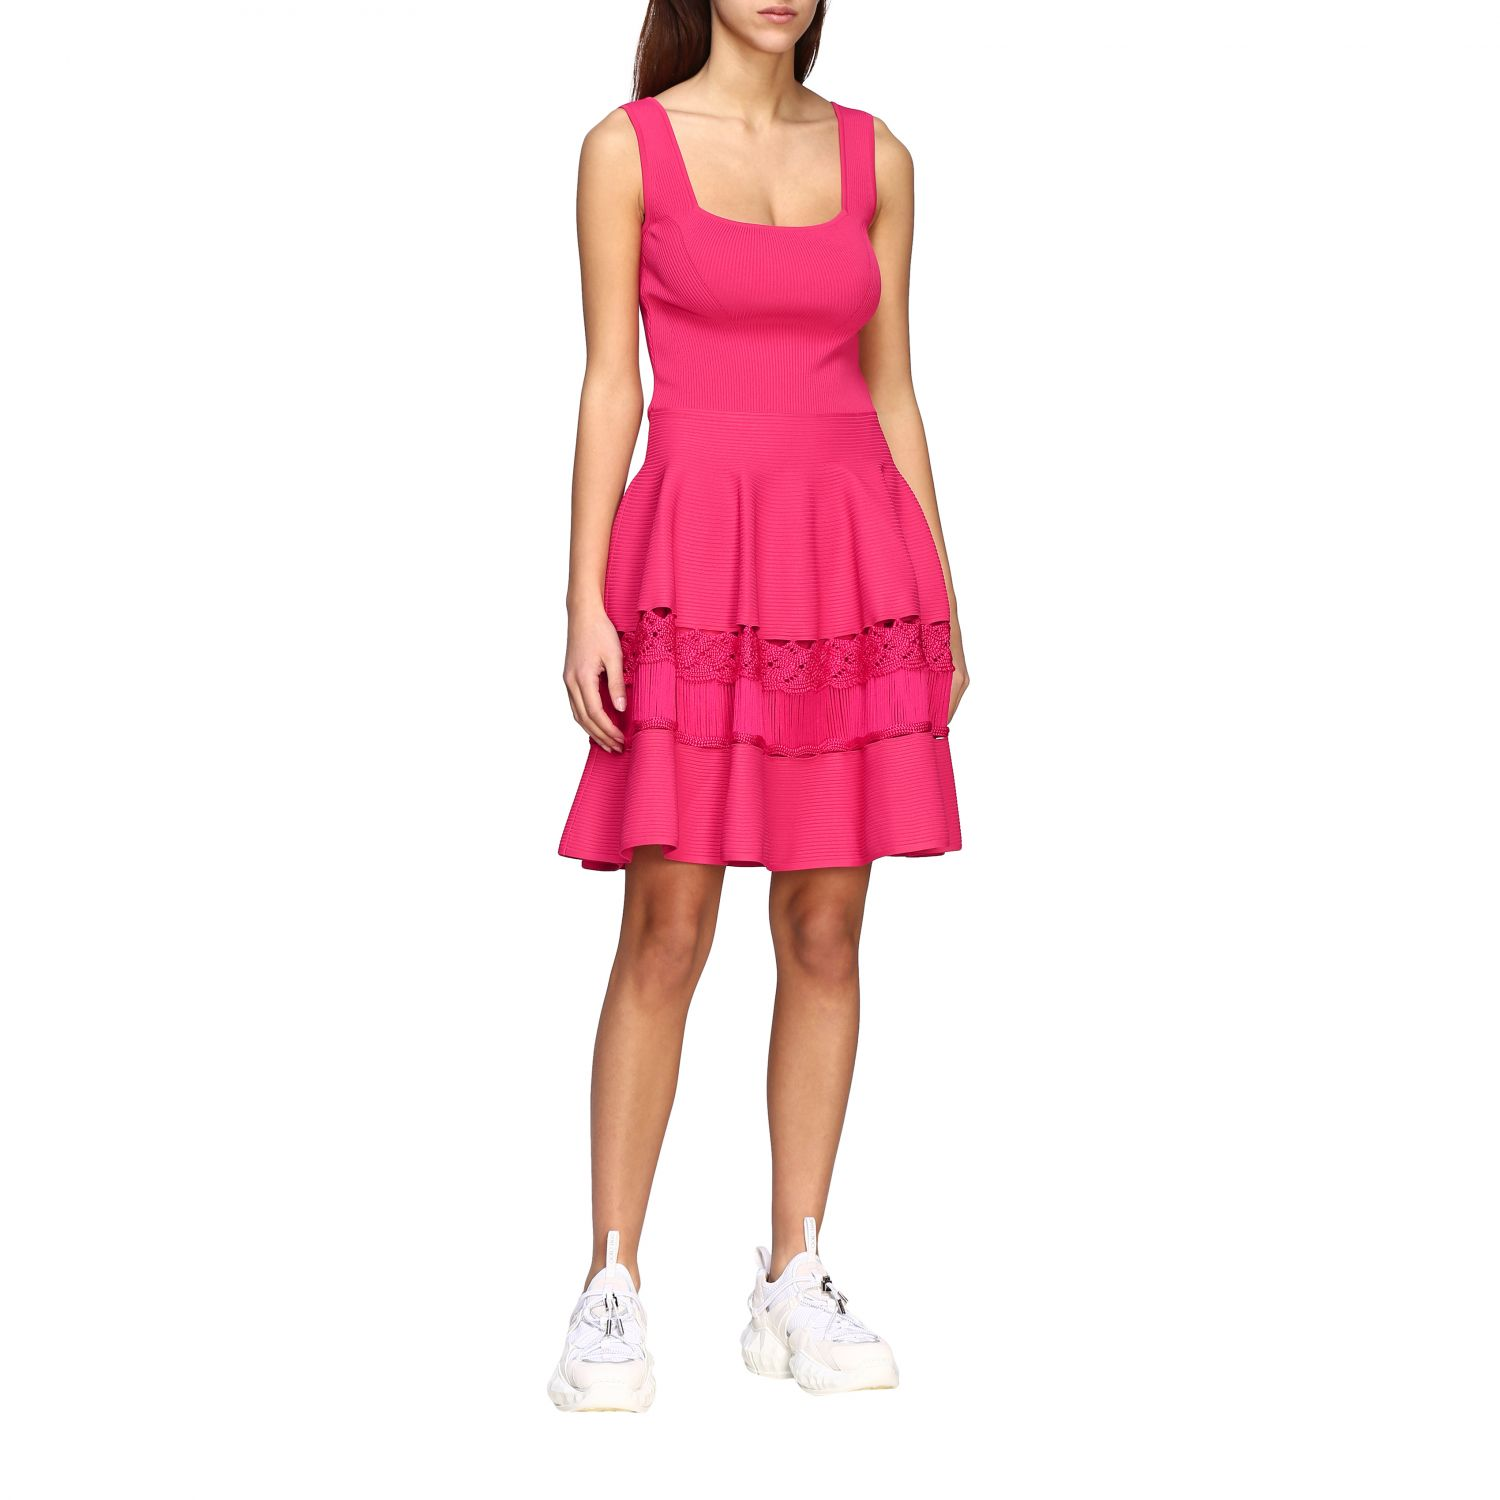 Dress Alexander Mcqueen: Dress women Alexander Mcqueen fuchsia 1